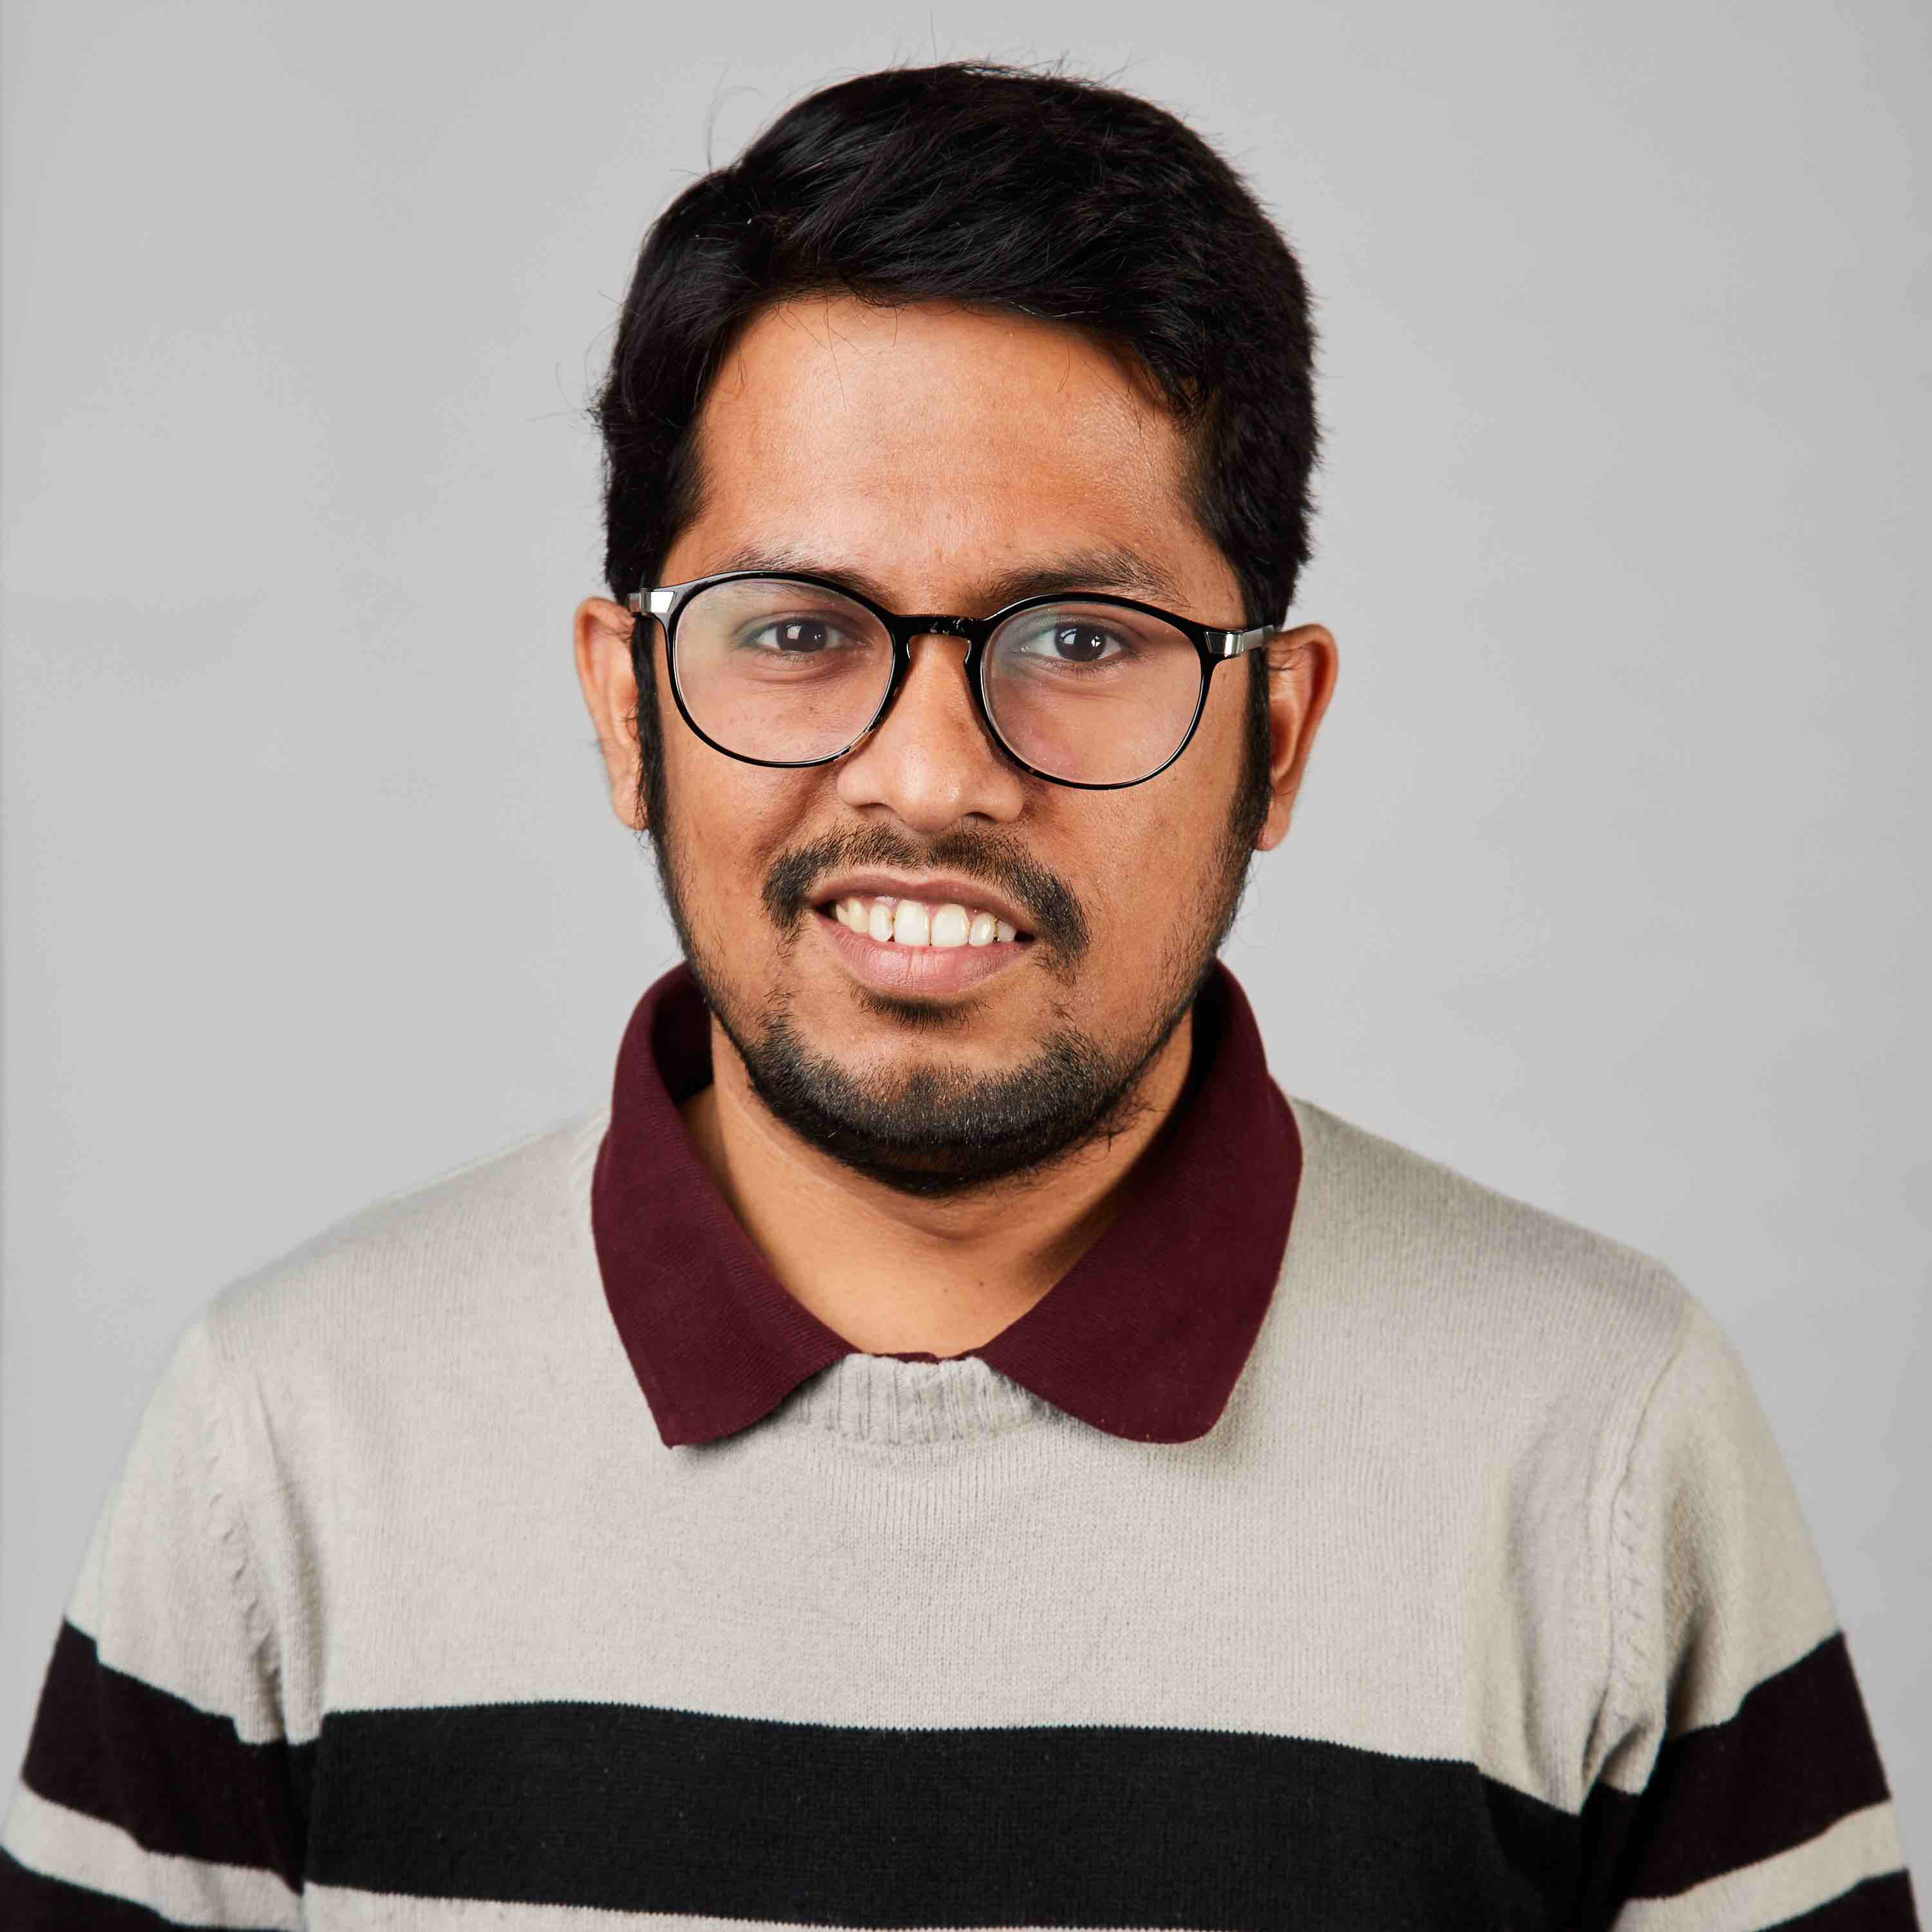 picture of sajib chakraborty - researcher at mobi